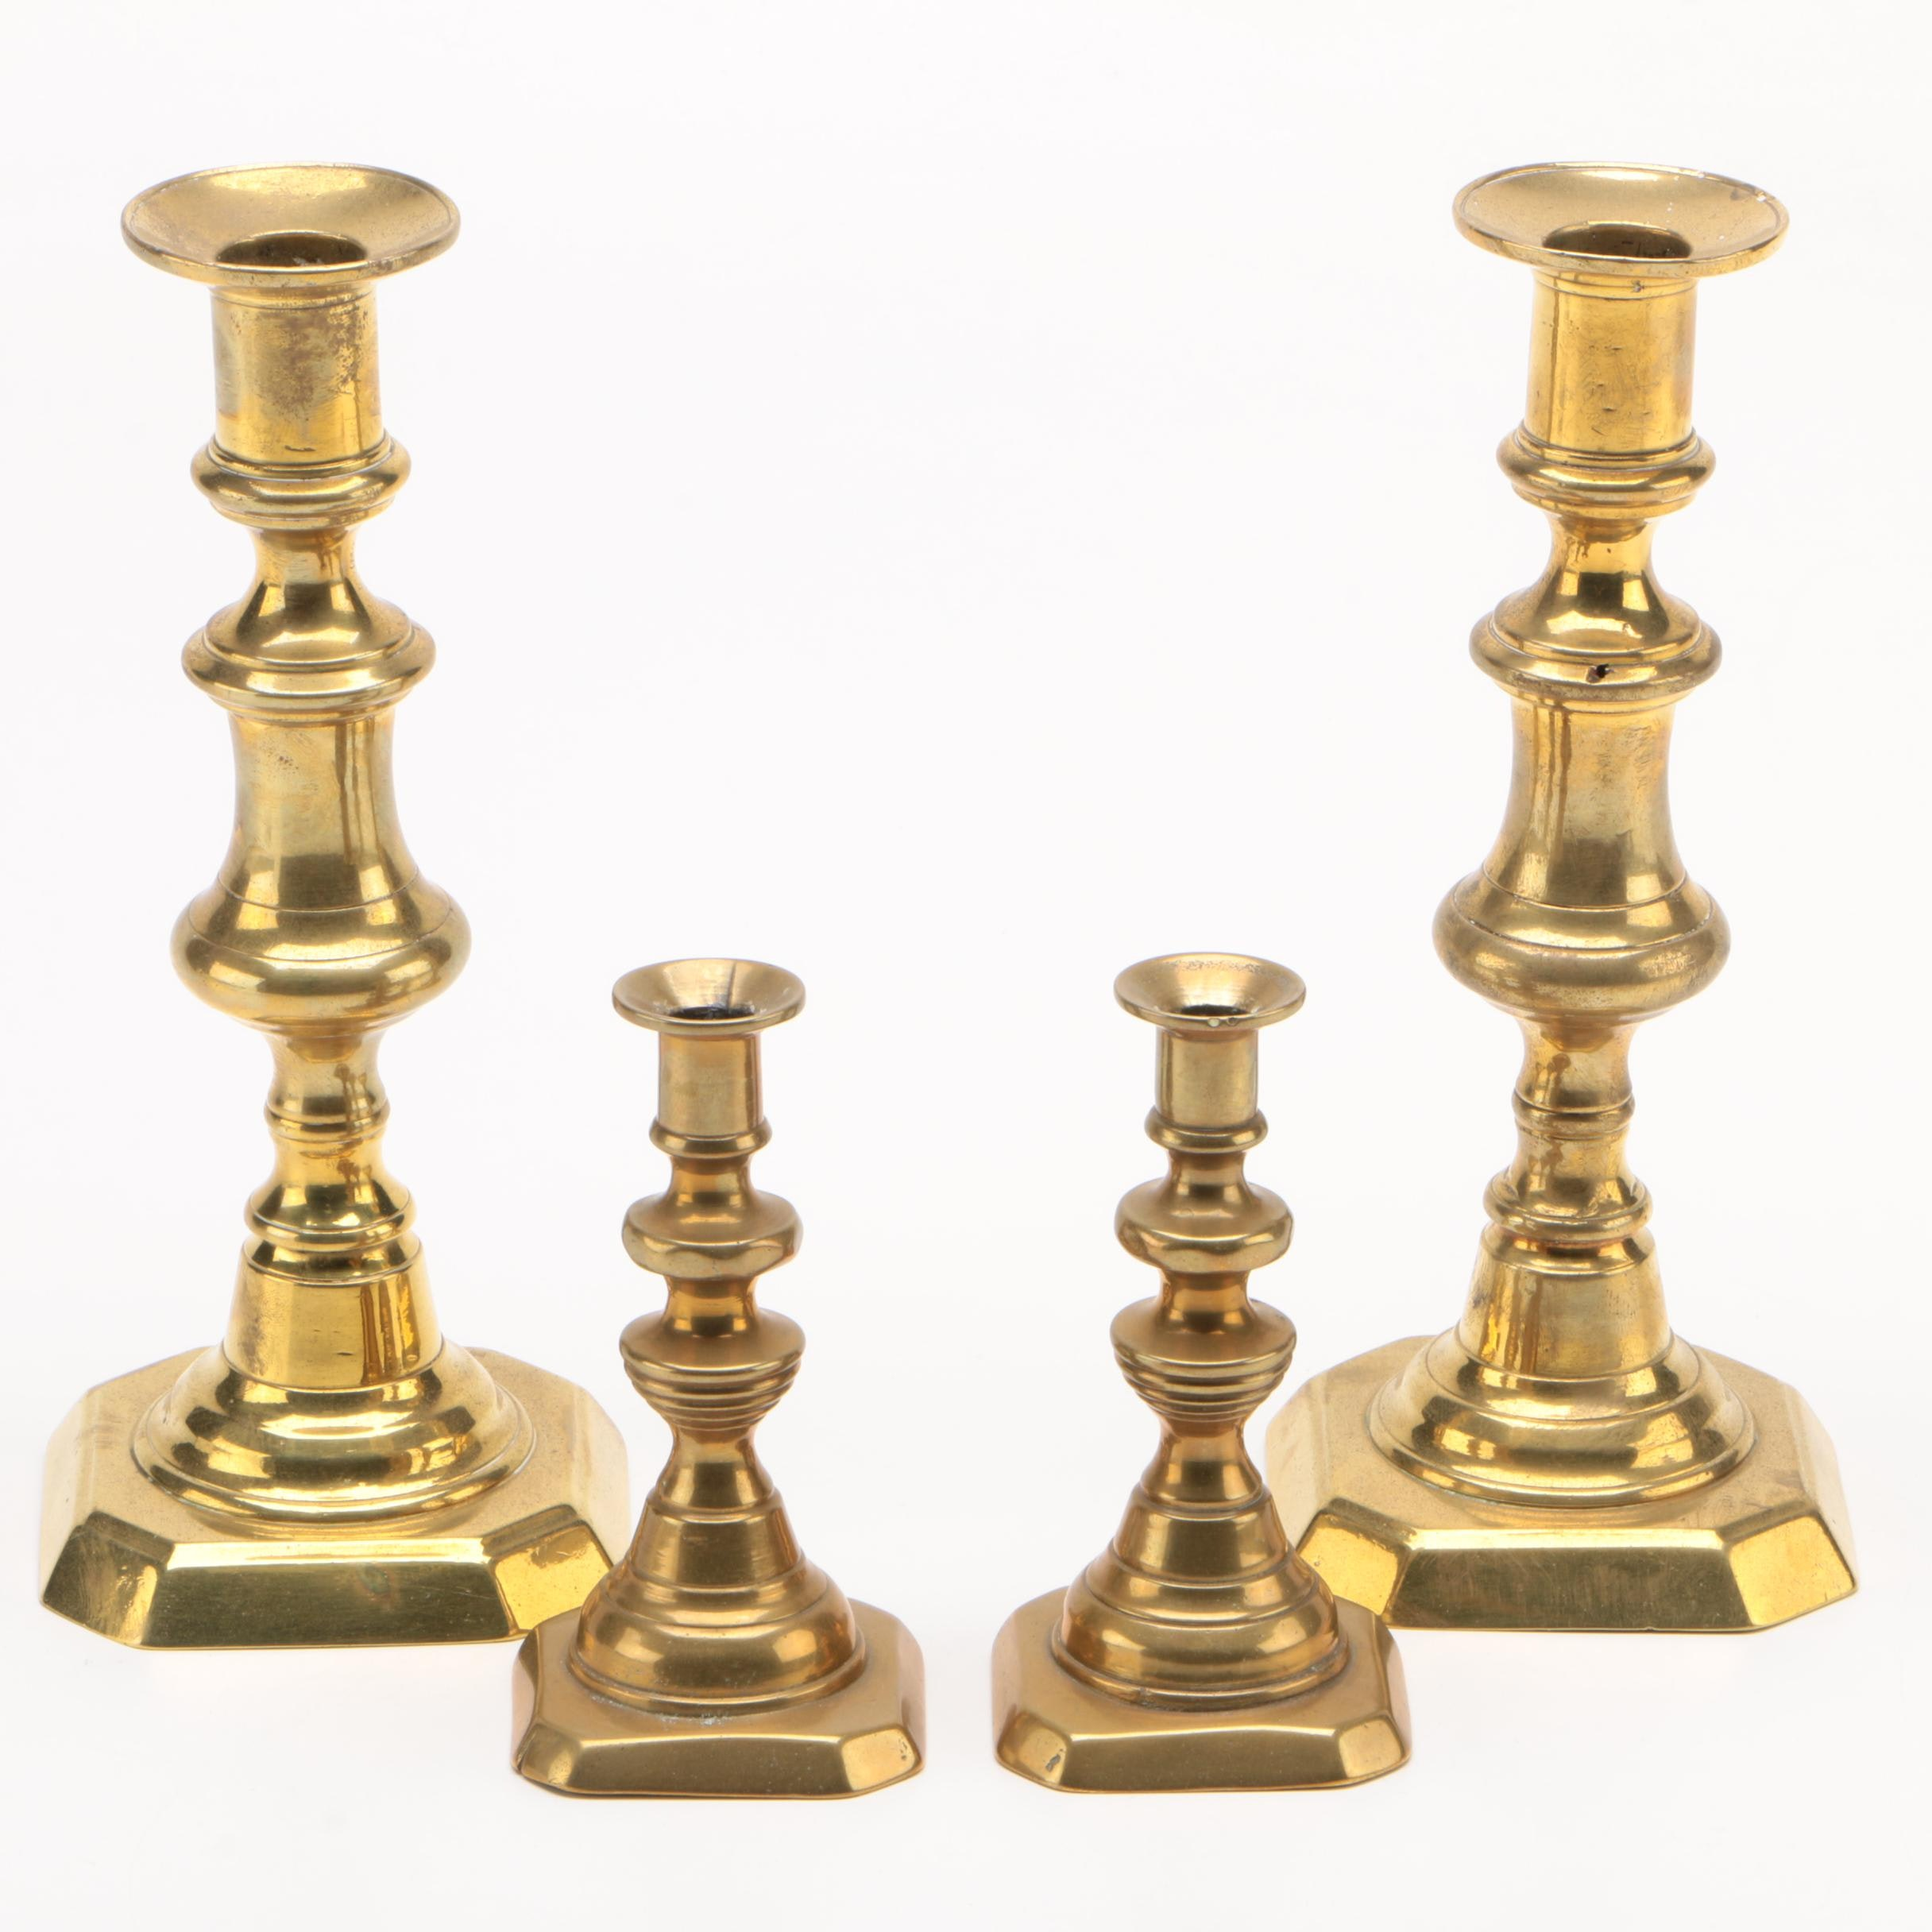 English Brass Baluster Candlestick Pairs, Late 19th/ Early 20th Century